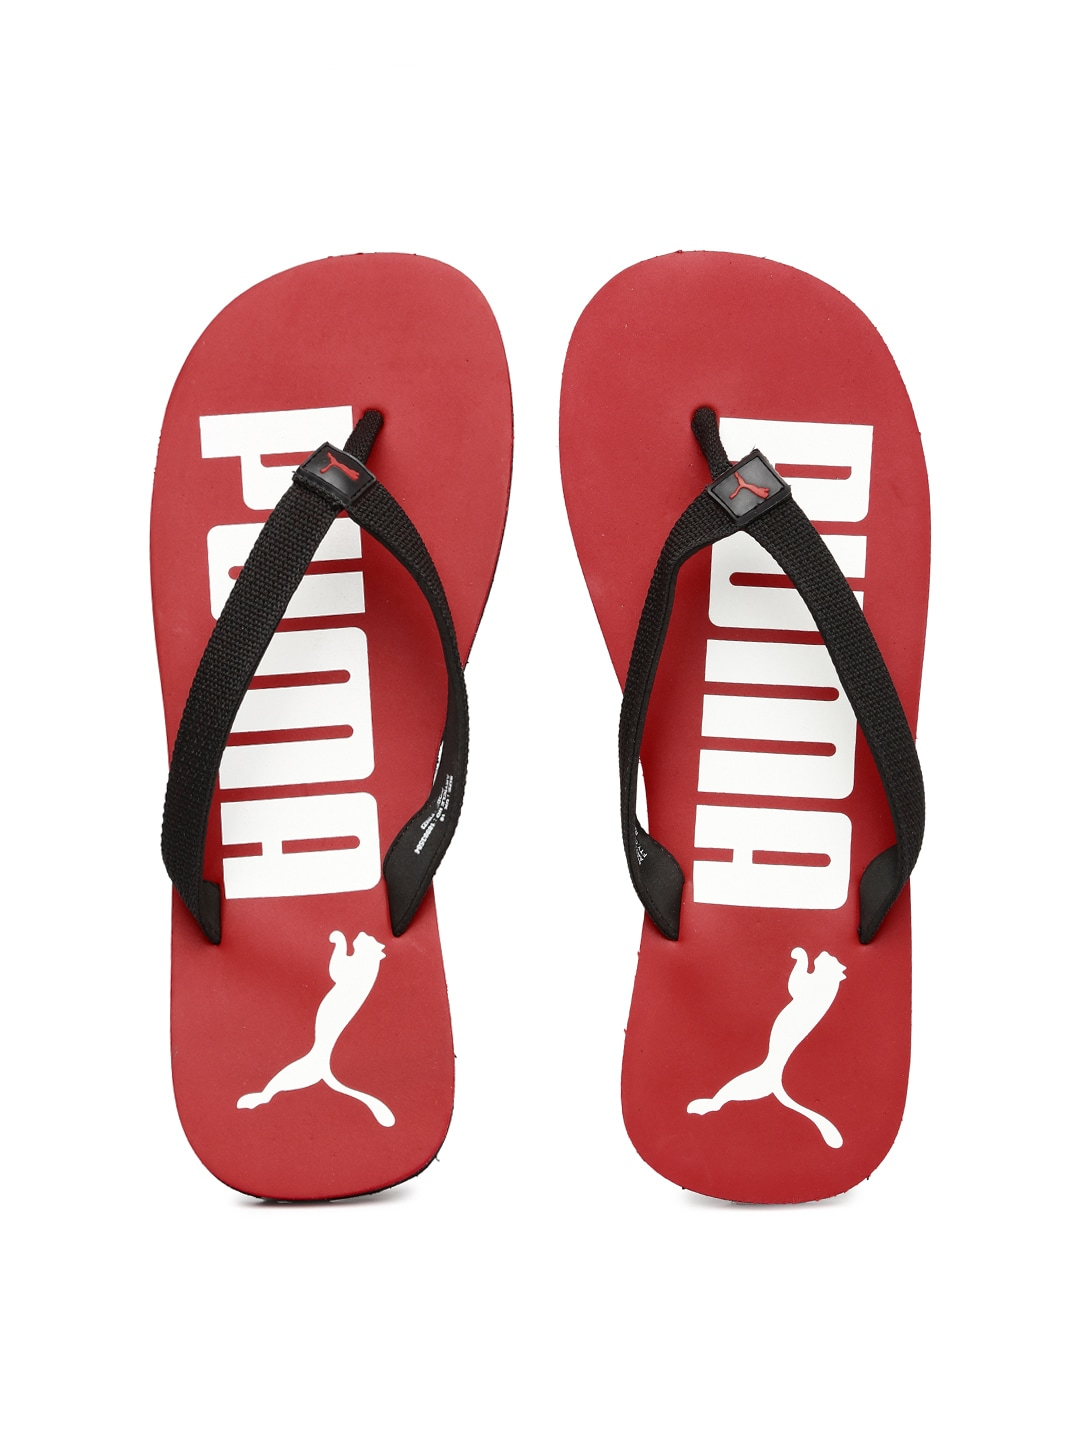 88fd0bd1dc67 Puma 18993504 Men Black And Red Printed Flip Flops - Best Price in ...